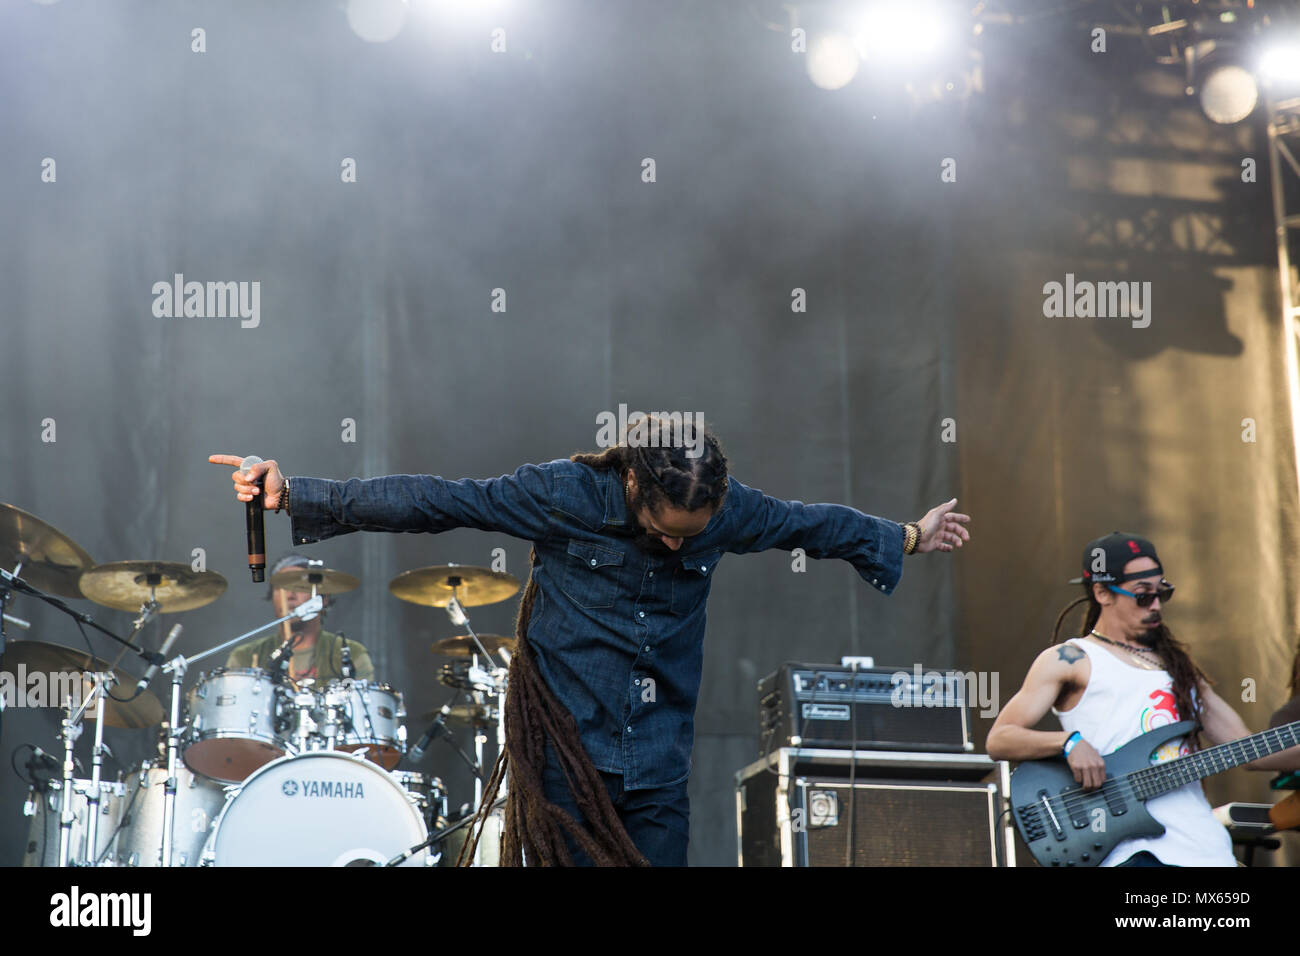 Toronto, Canada, 02nd June, 2018, Damian Marley, youngest son of reggae legend Bob Marley performs at the Fiel trip Music & Arts Festival in Toronto, Canada Credit: topconcertphoto/Alamy Live News Stock Photo